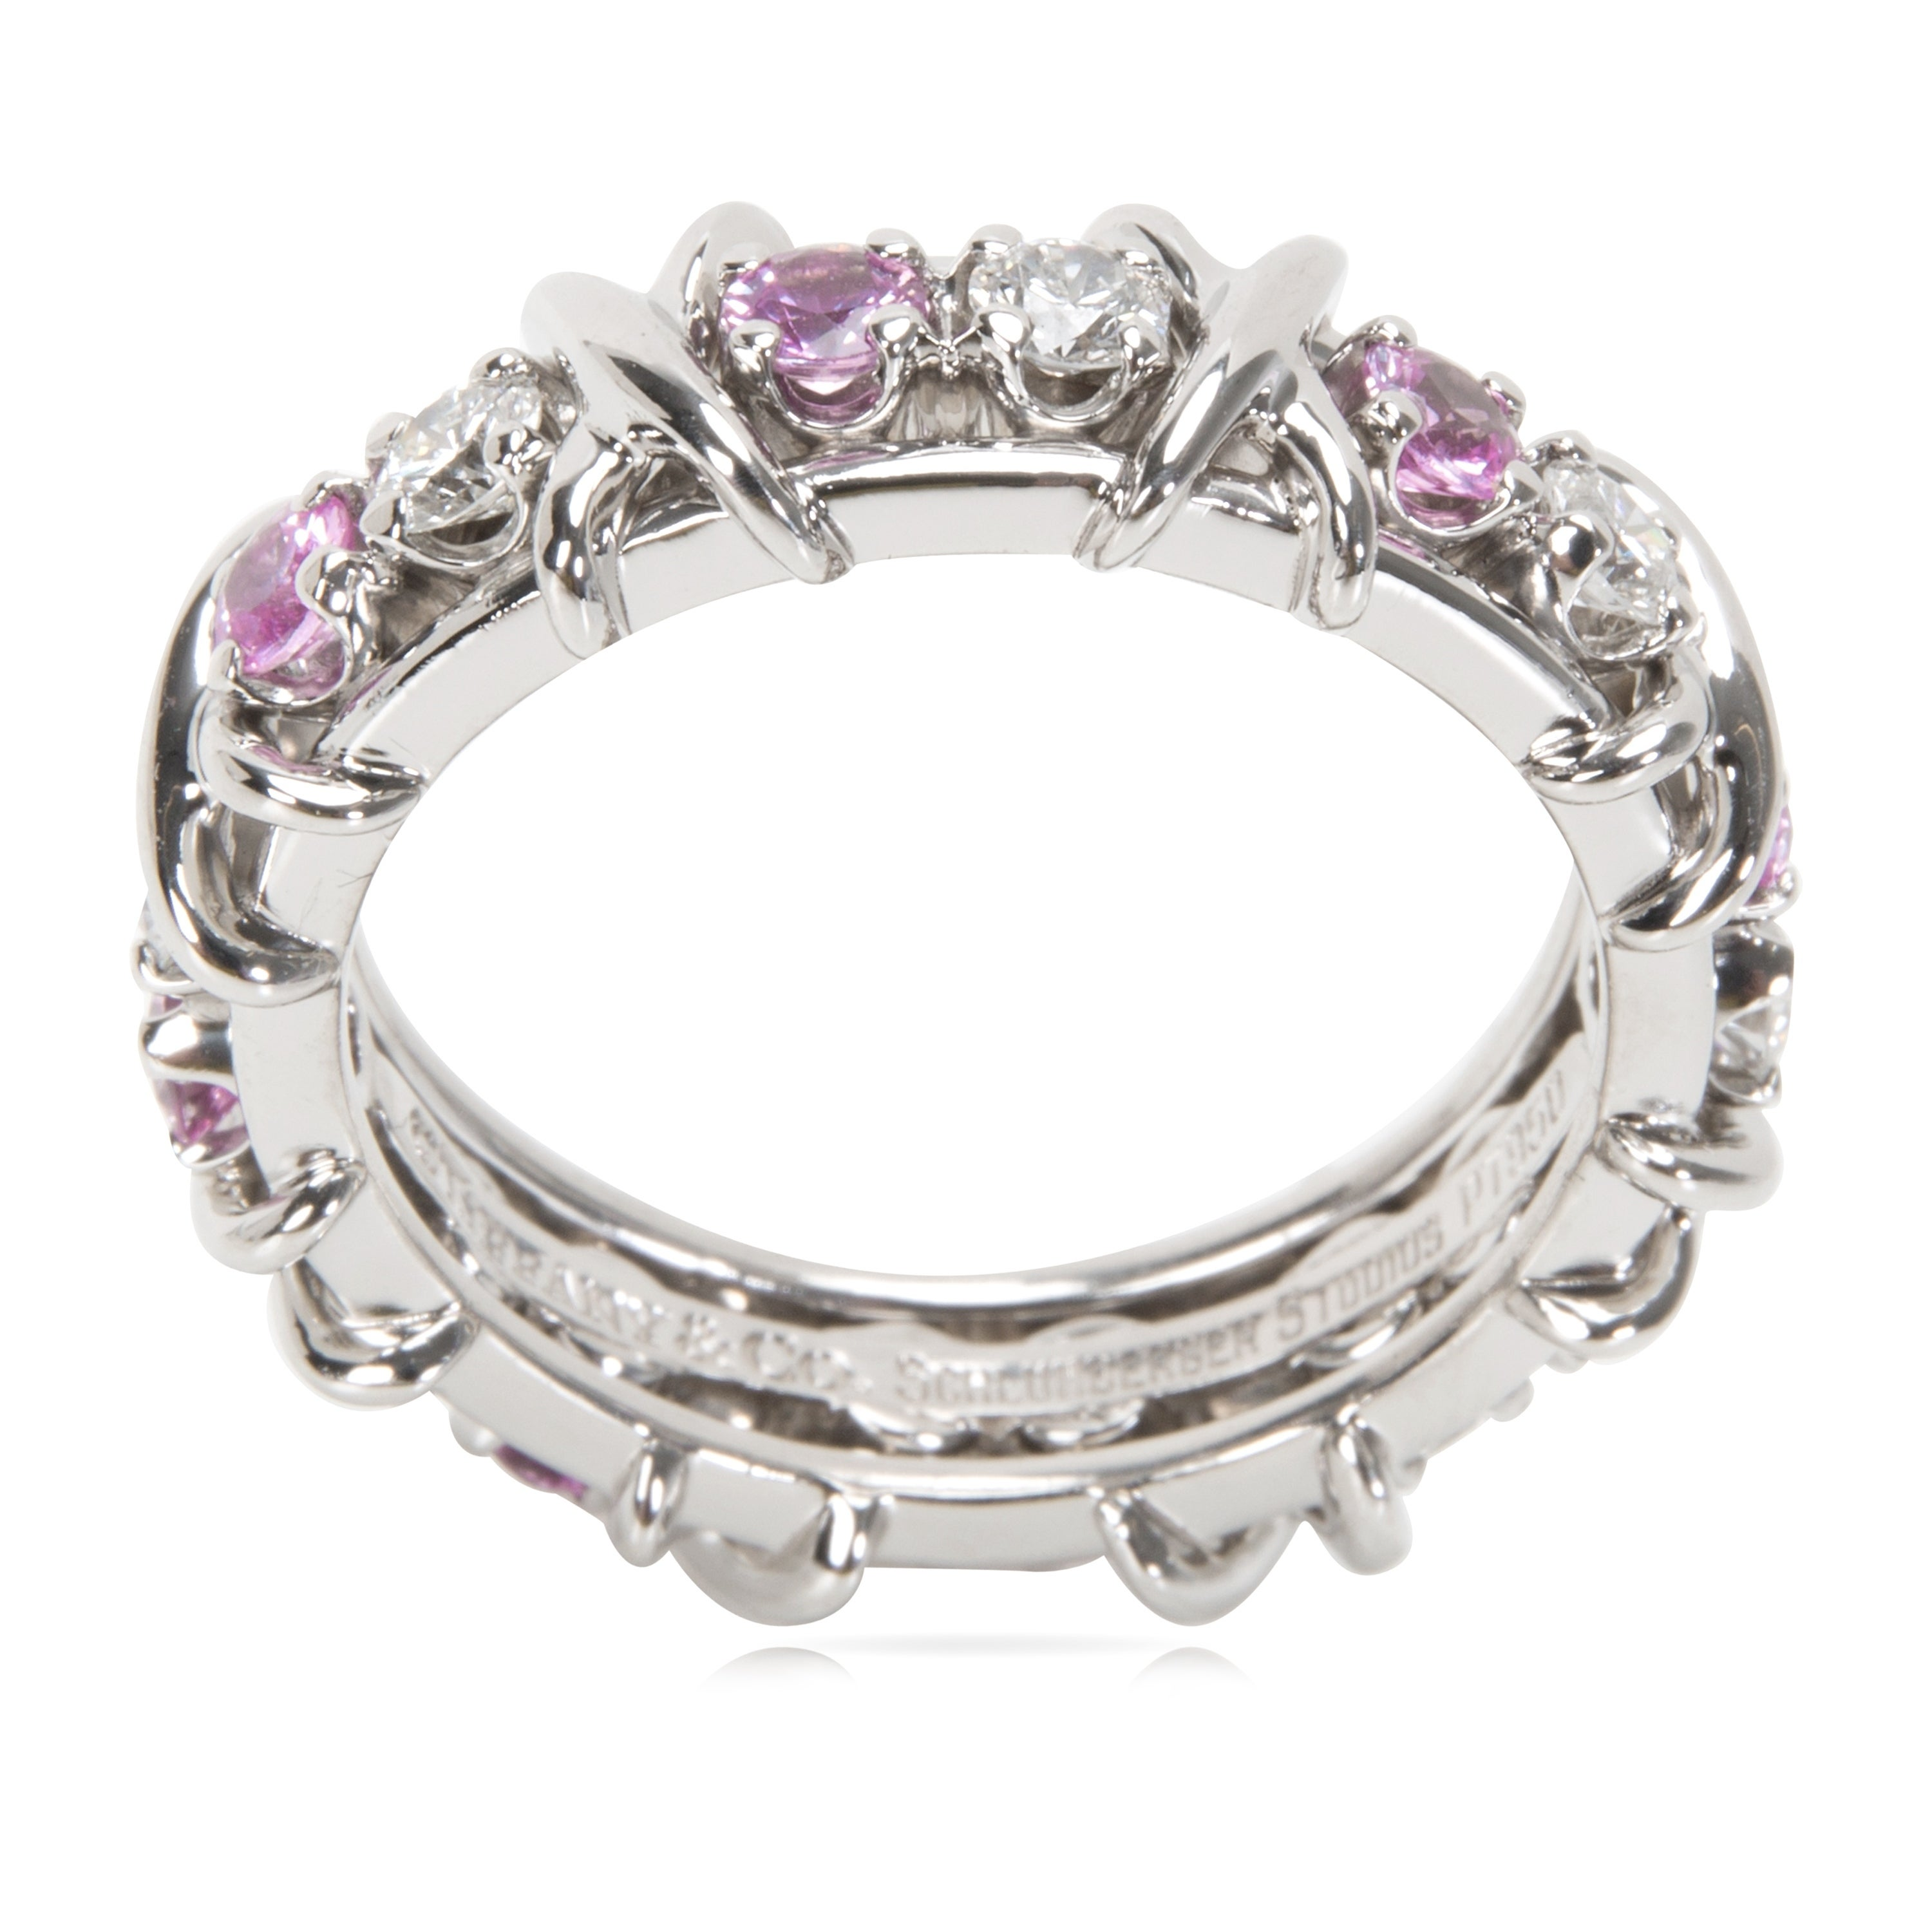 754047032 Shop Pre-Owned Tiffany & Co. Schlumberger Diamond & Pink Sapphire Ring -  Free Shipping Today - Overstock - 23056119